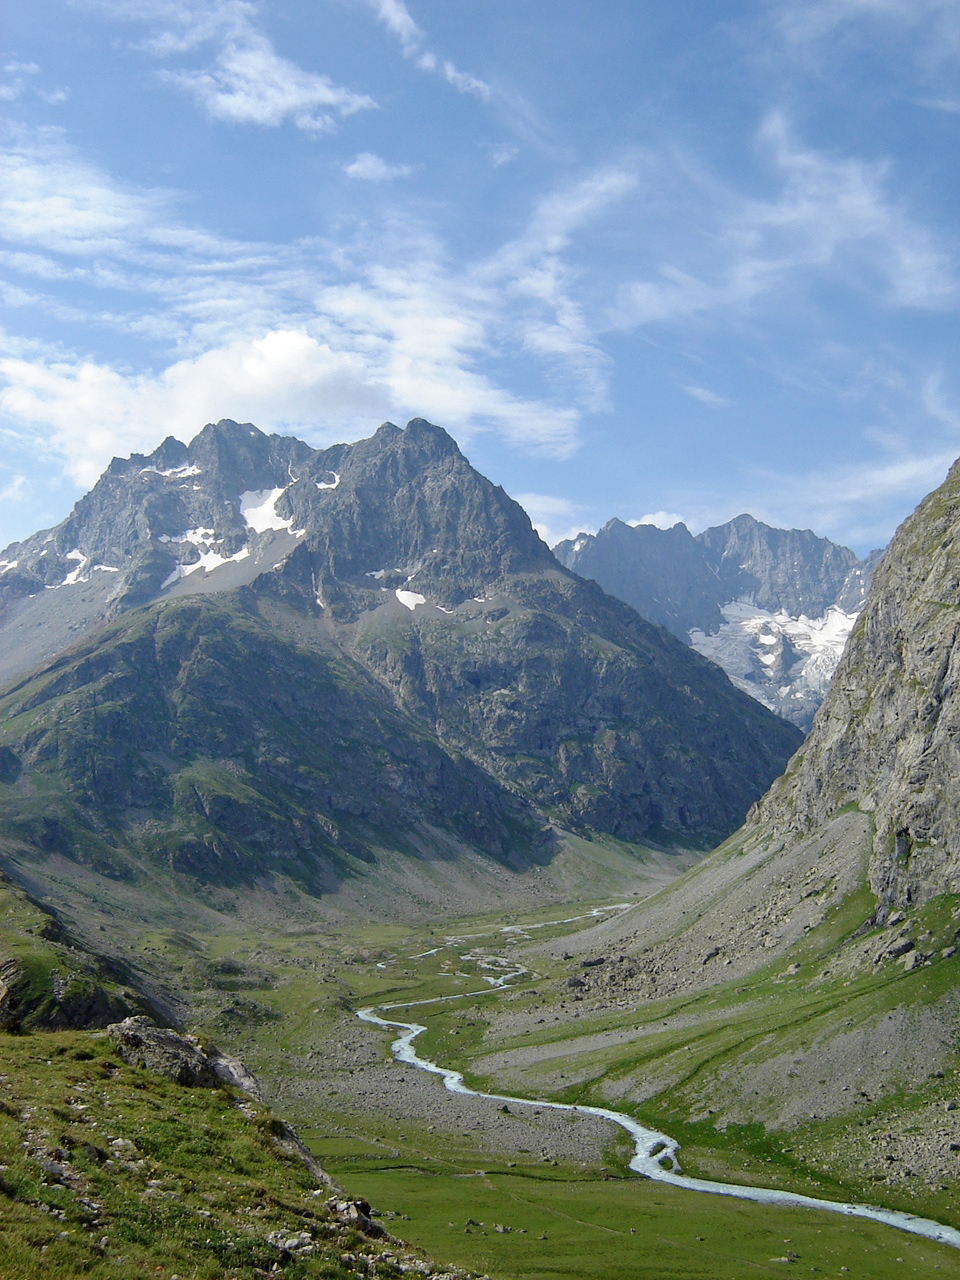 Chamoissière Peaks and Romanche River, Écrins national Park, French Alps